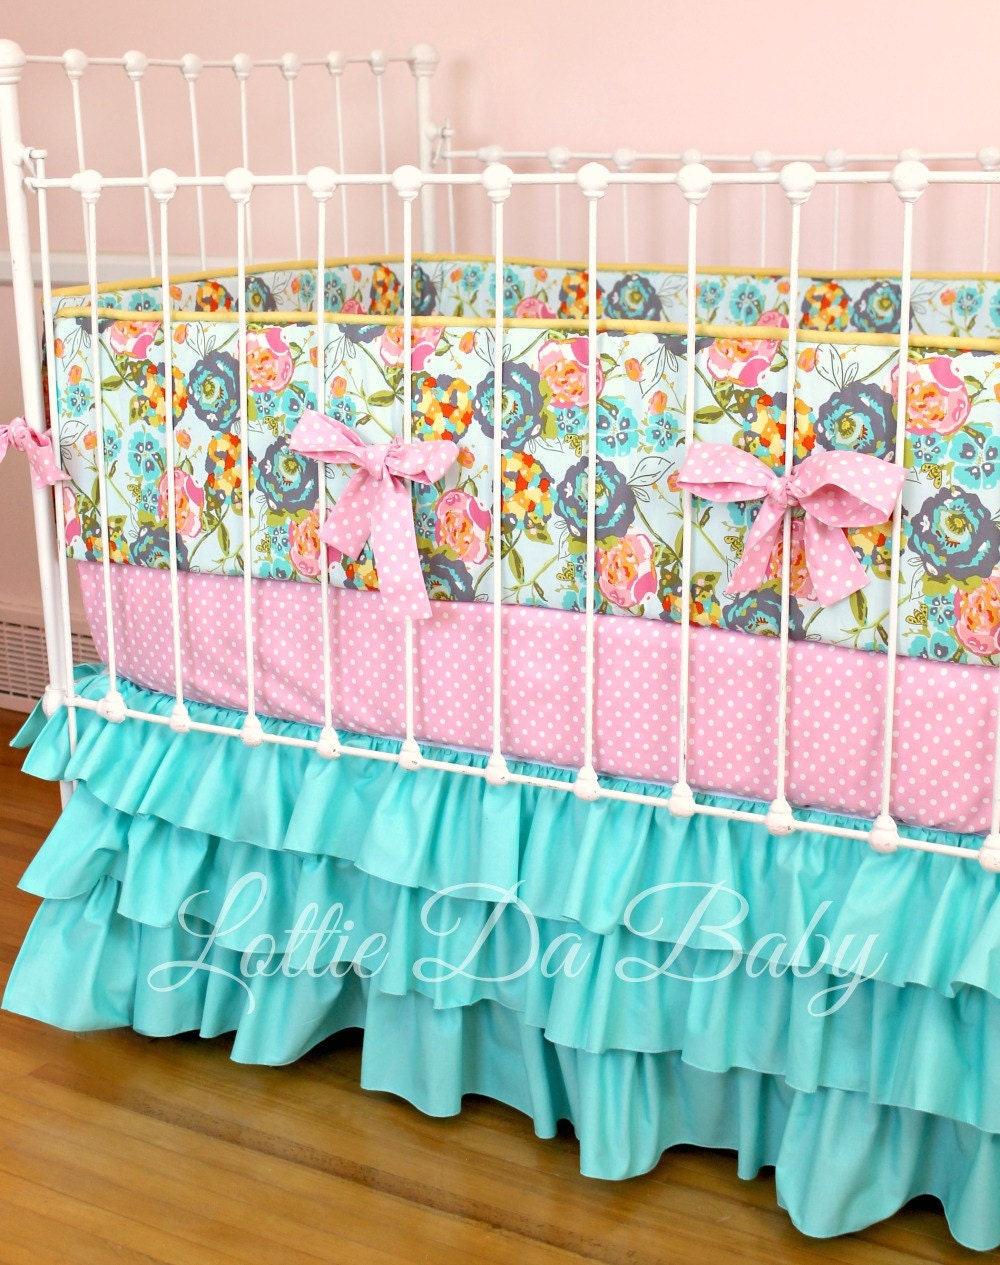 custom baby girl crib bedding lily belle turquoise. Black Bedroom Furniture Sets. Home Design Ideas